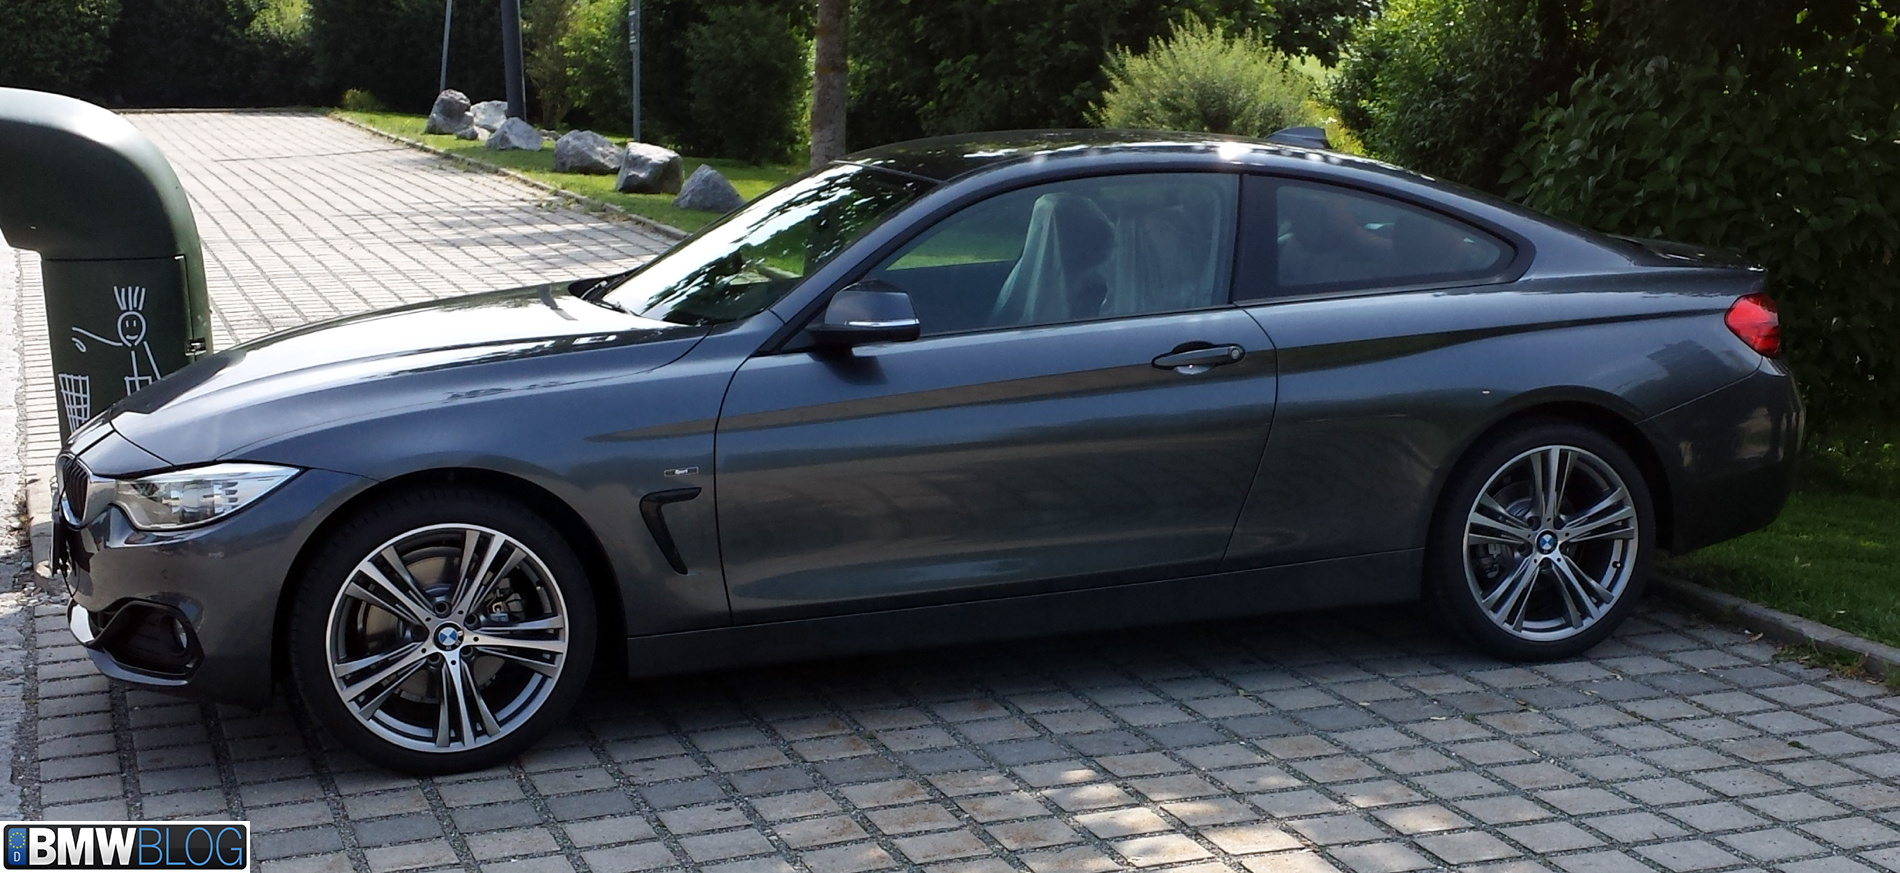 Bmw 428i Coupe >> Bmw 428i Coupe Sport Line Spotted In Germany